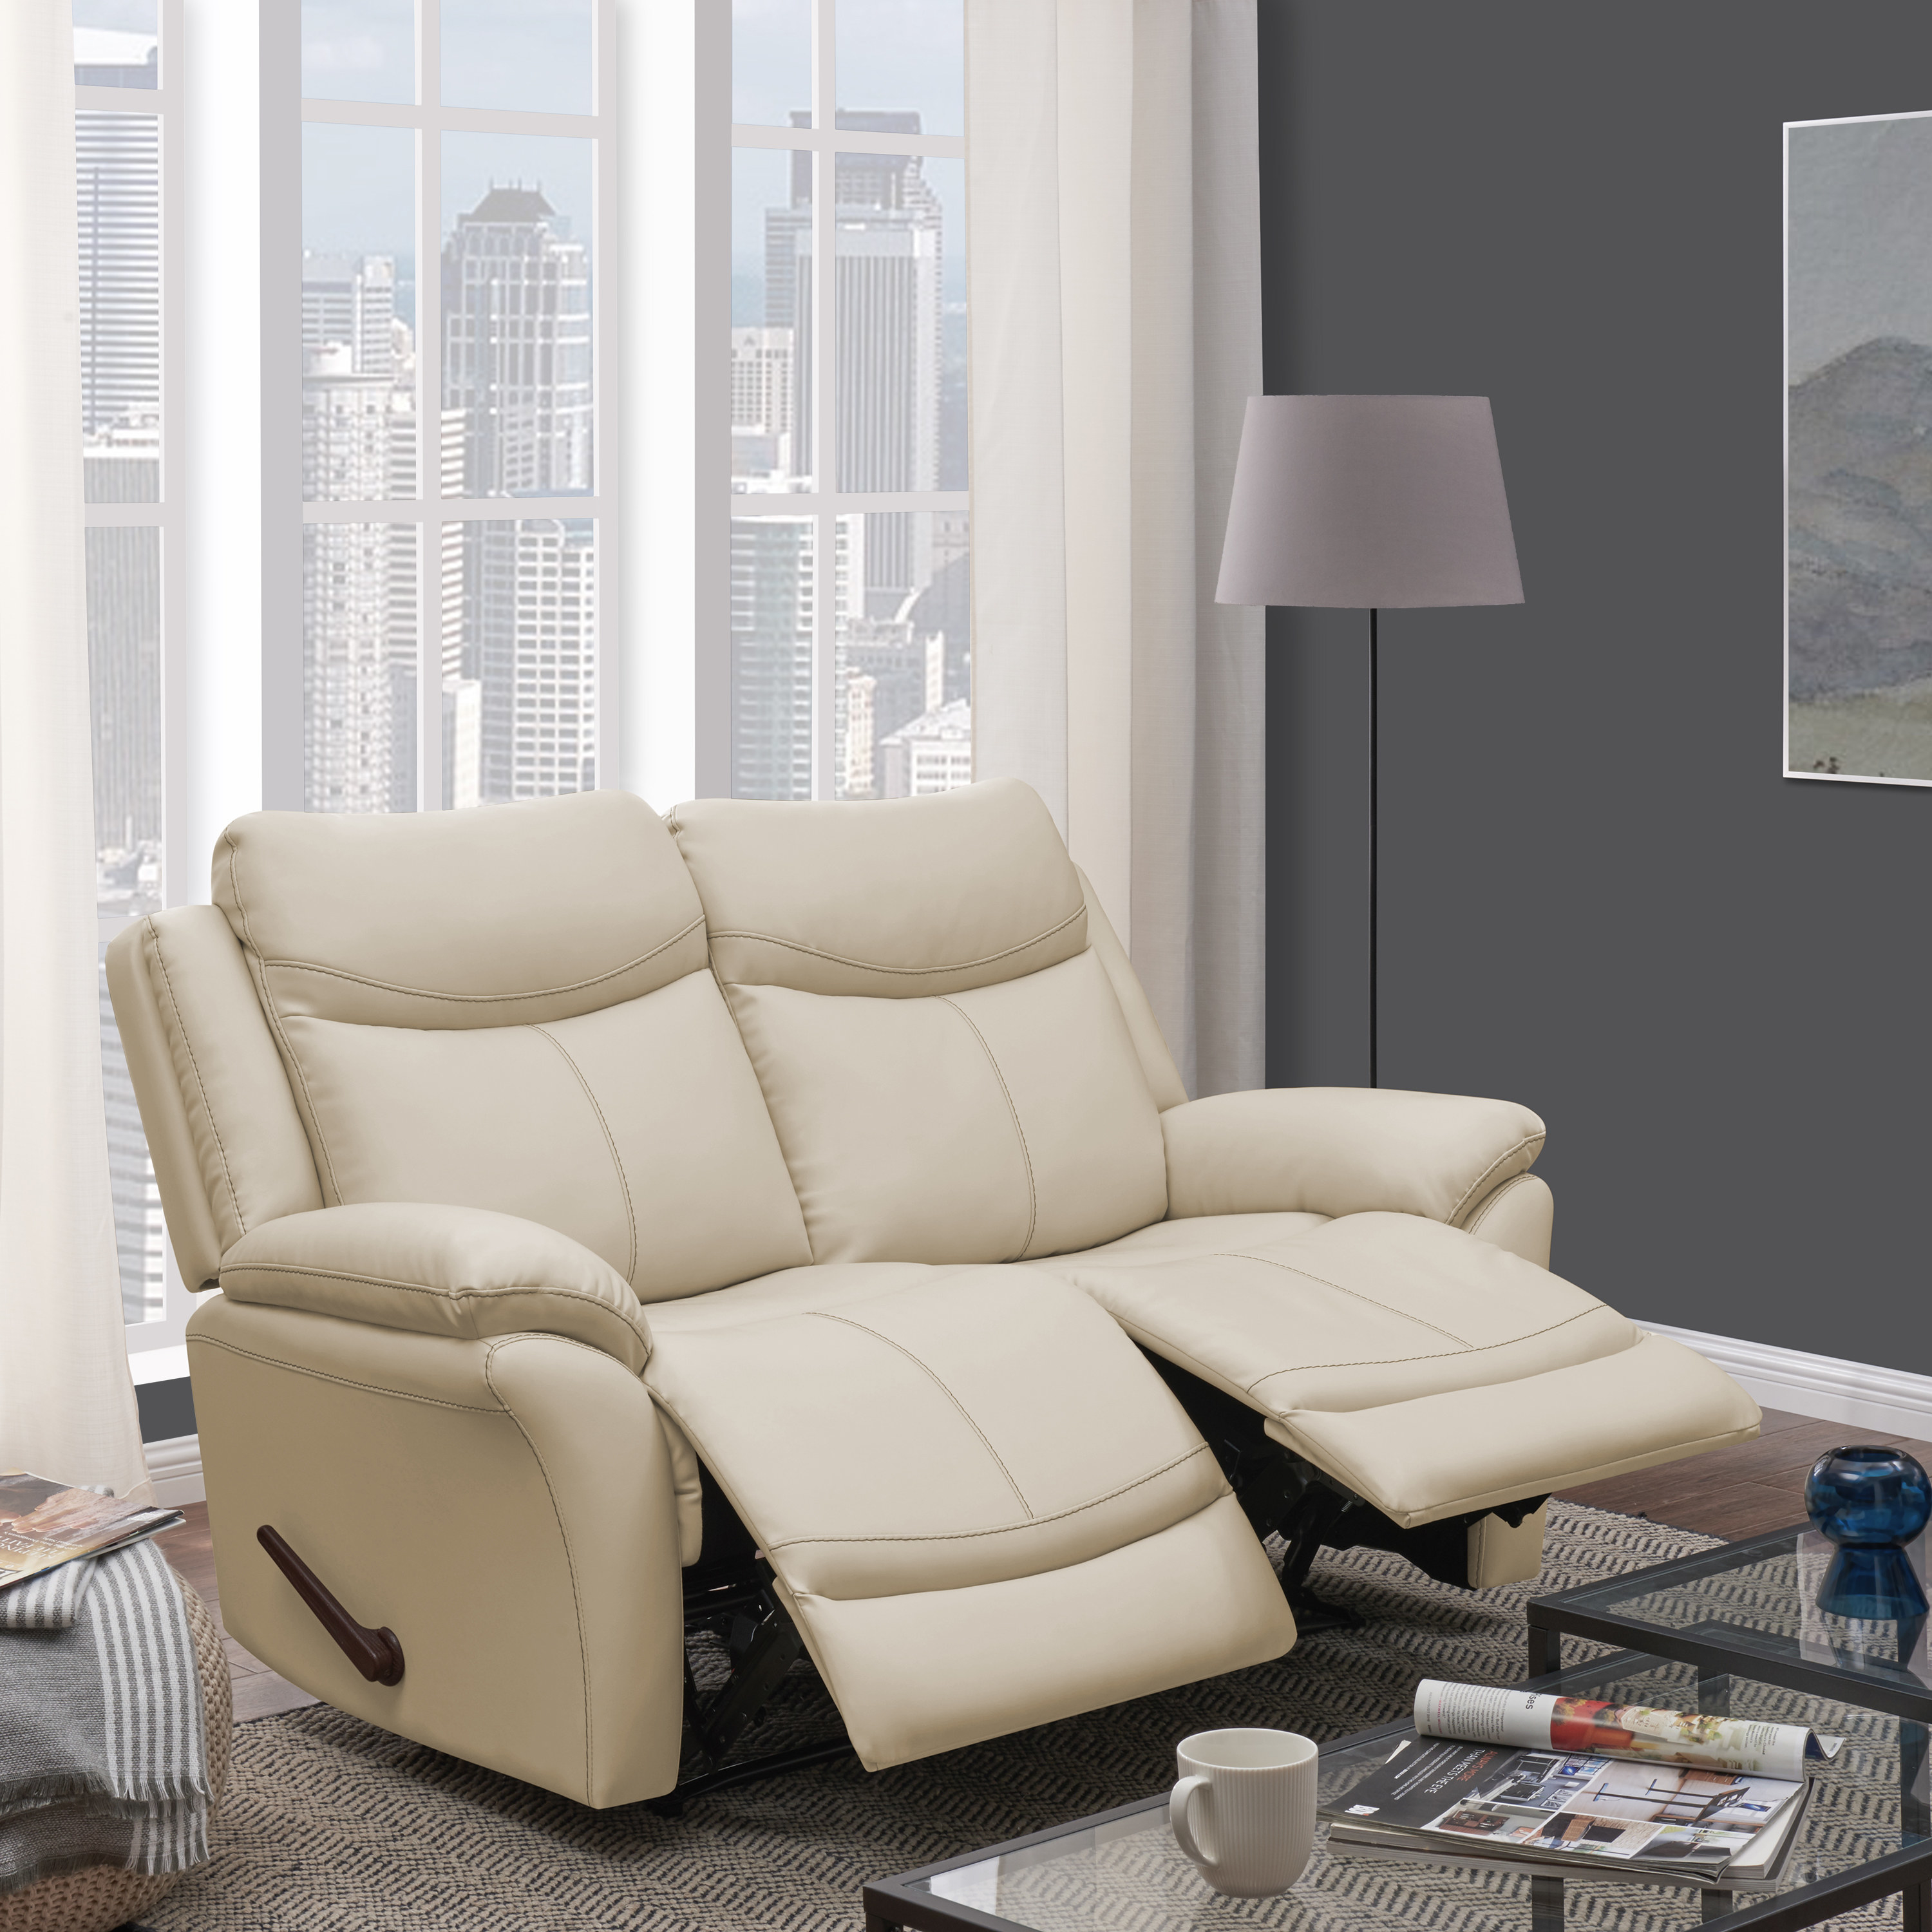 the white leather loveseat